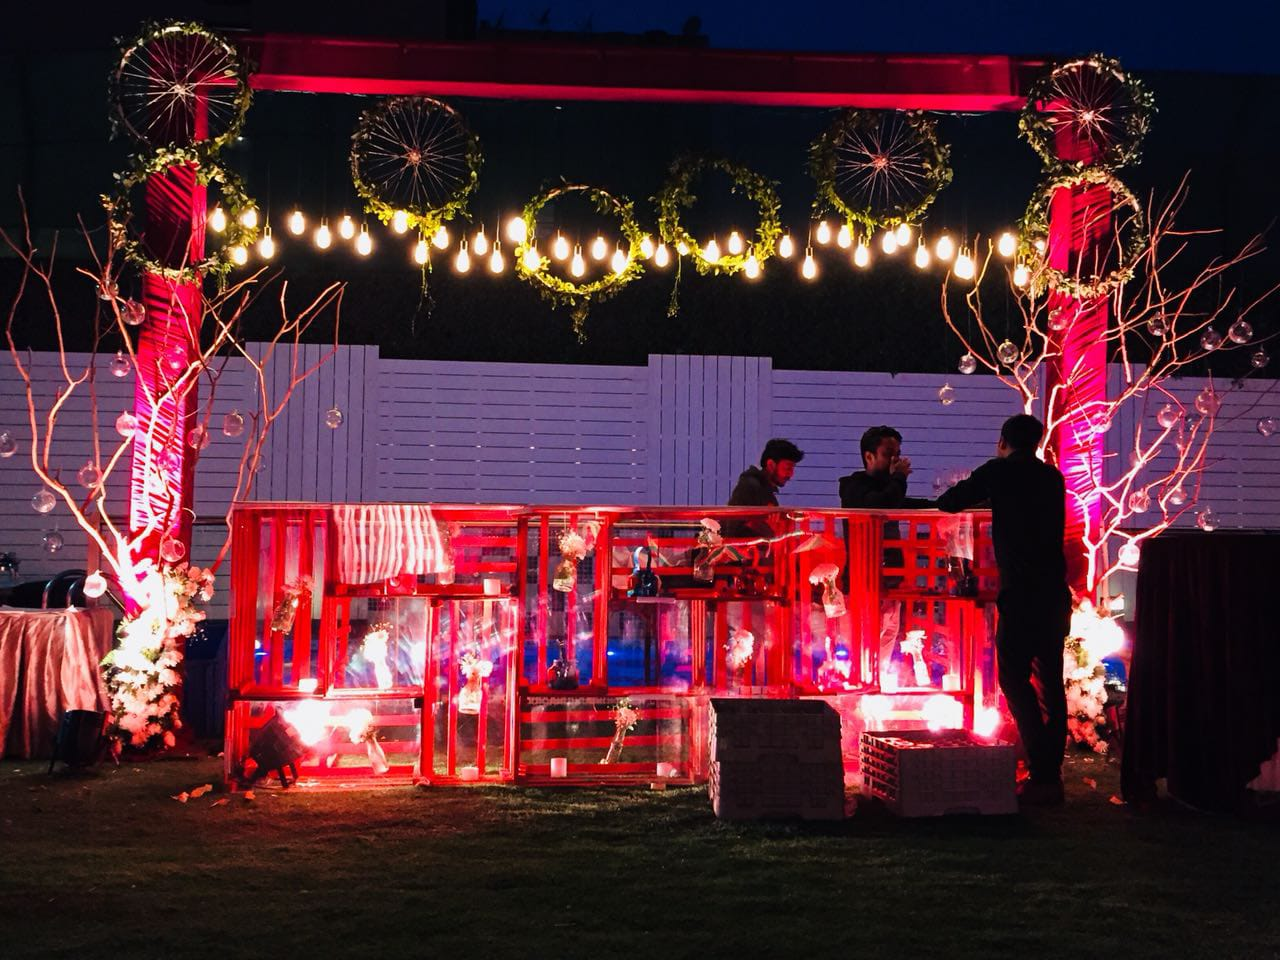 quirky bar in pink shade decorated with lights